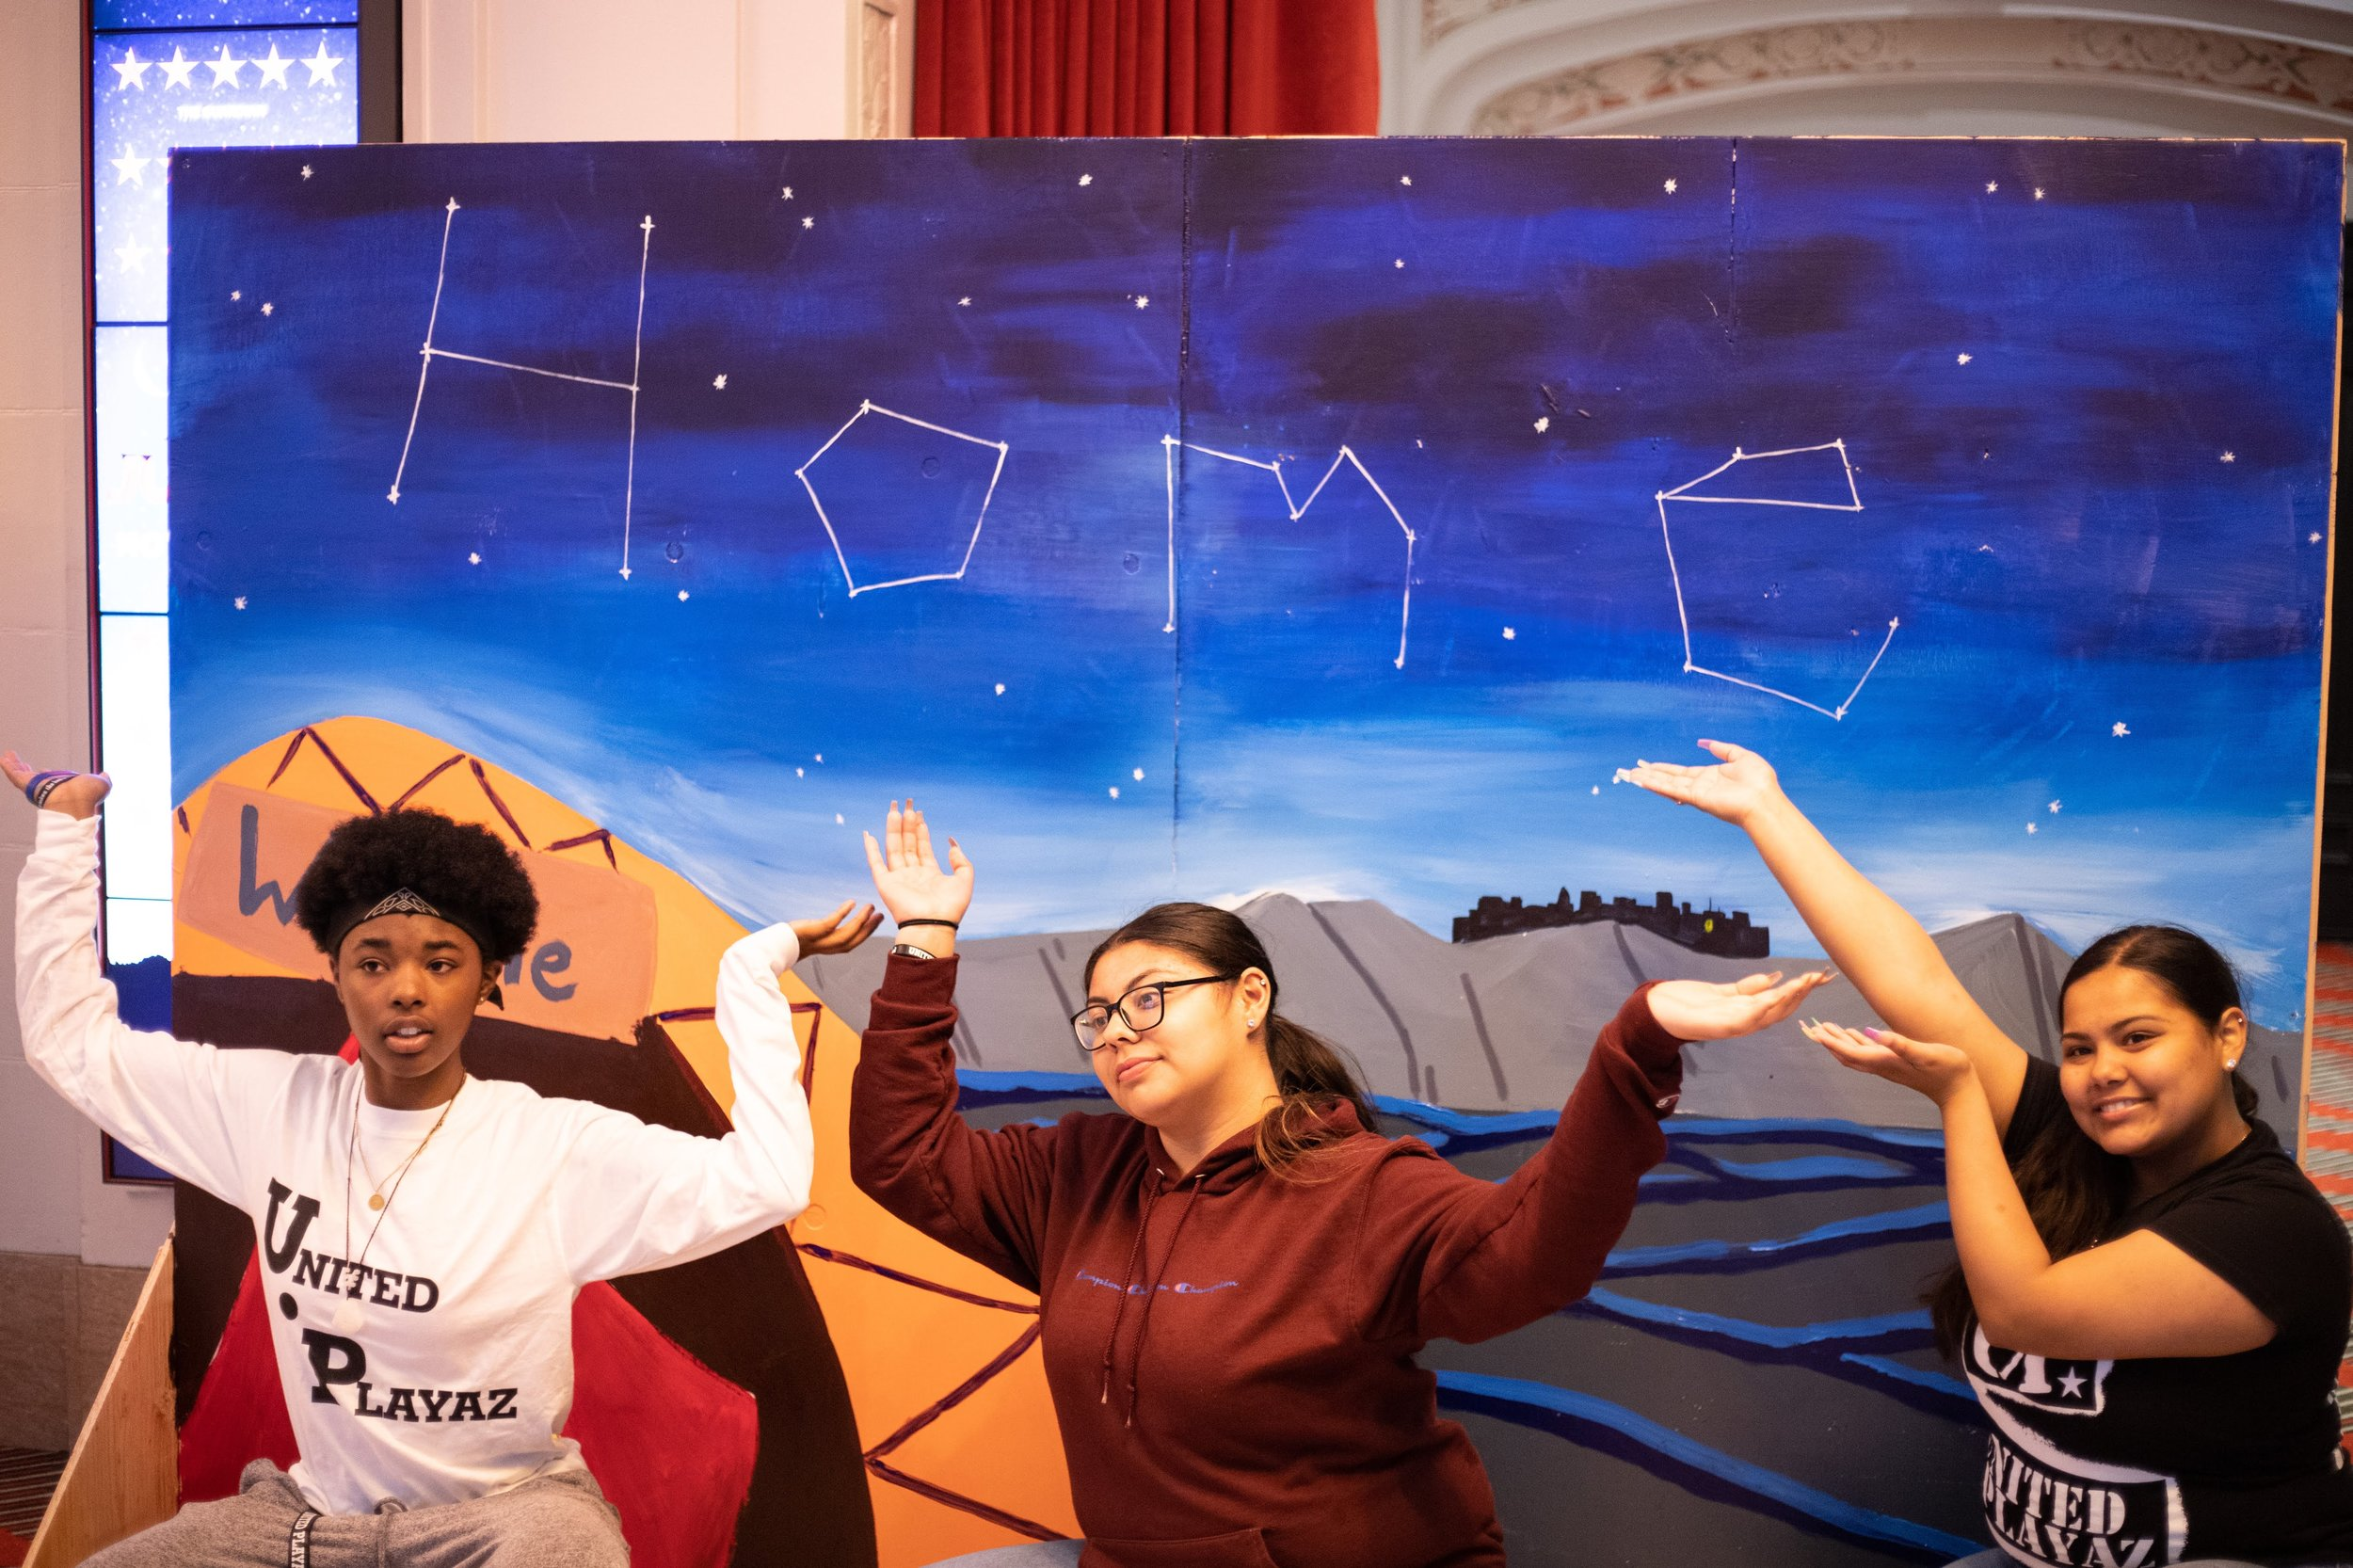 United Playaz with their mural at Curran Theatre ©Maddison October.jpg